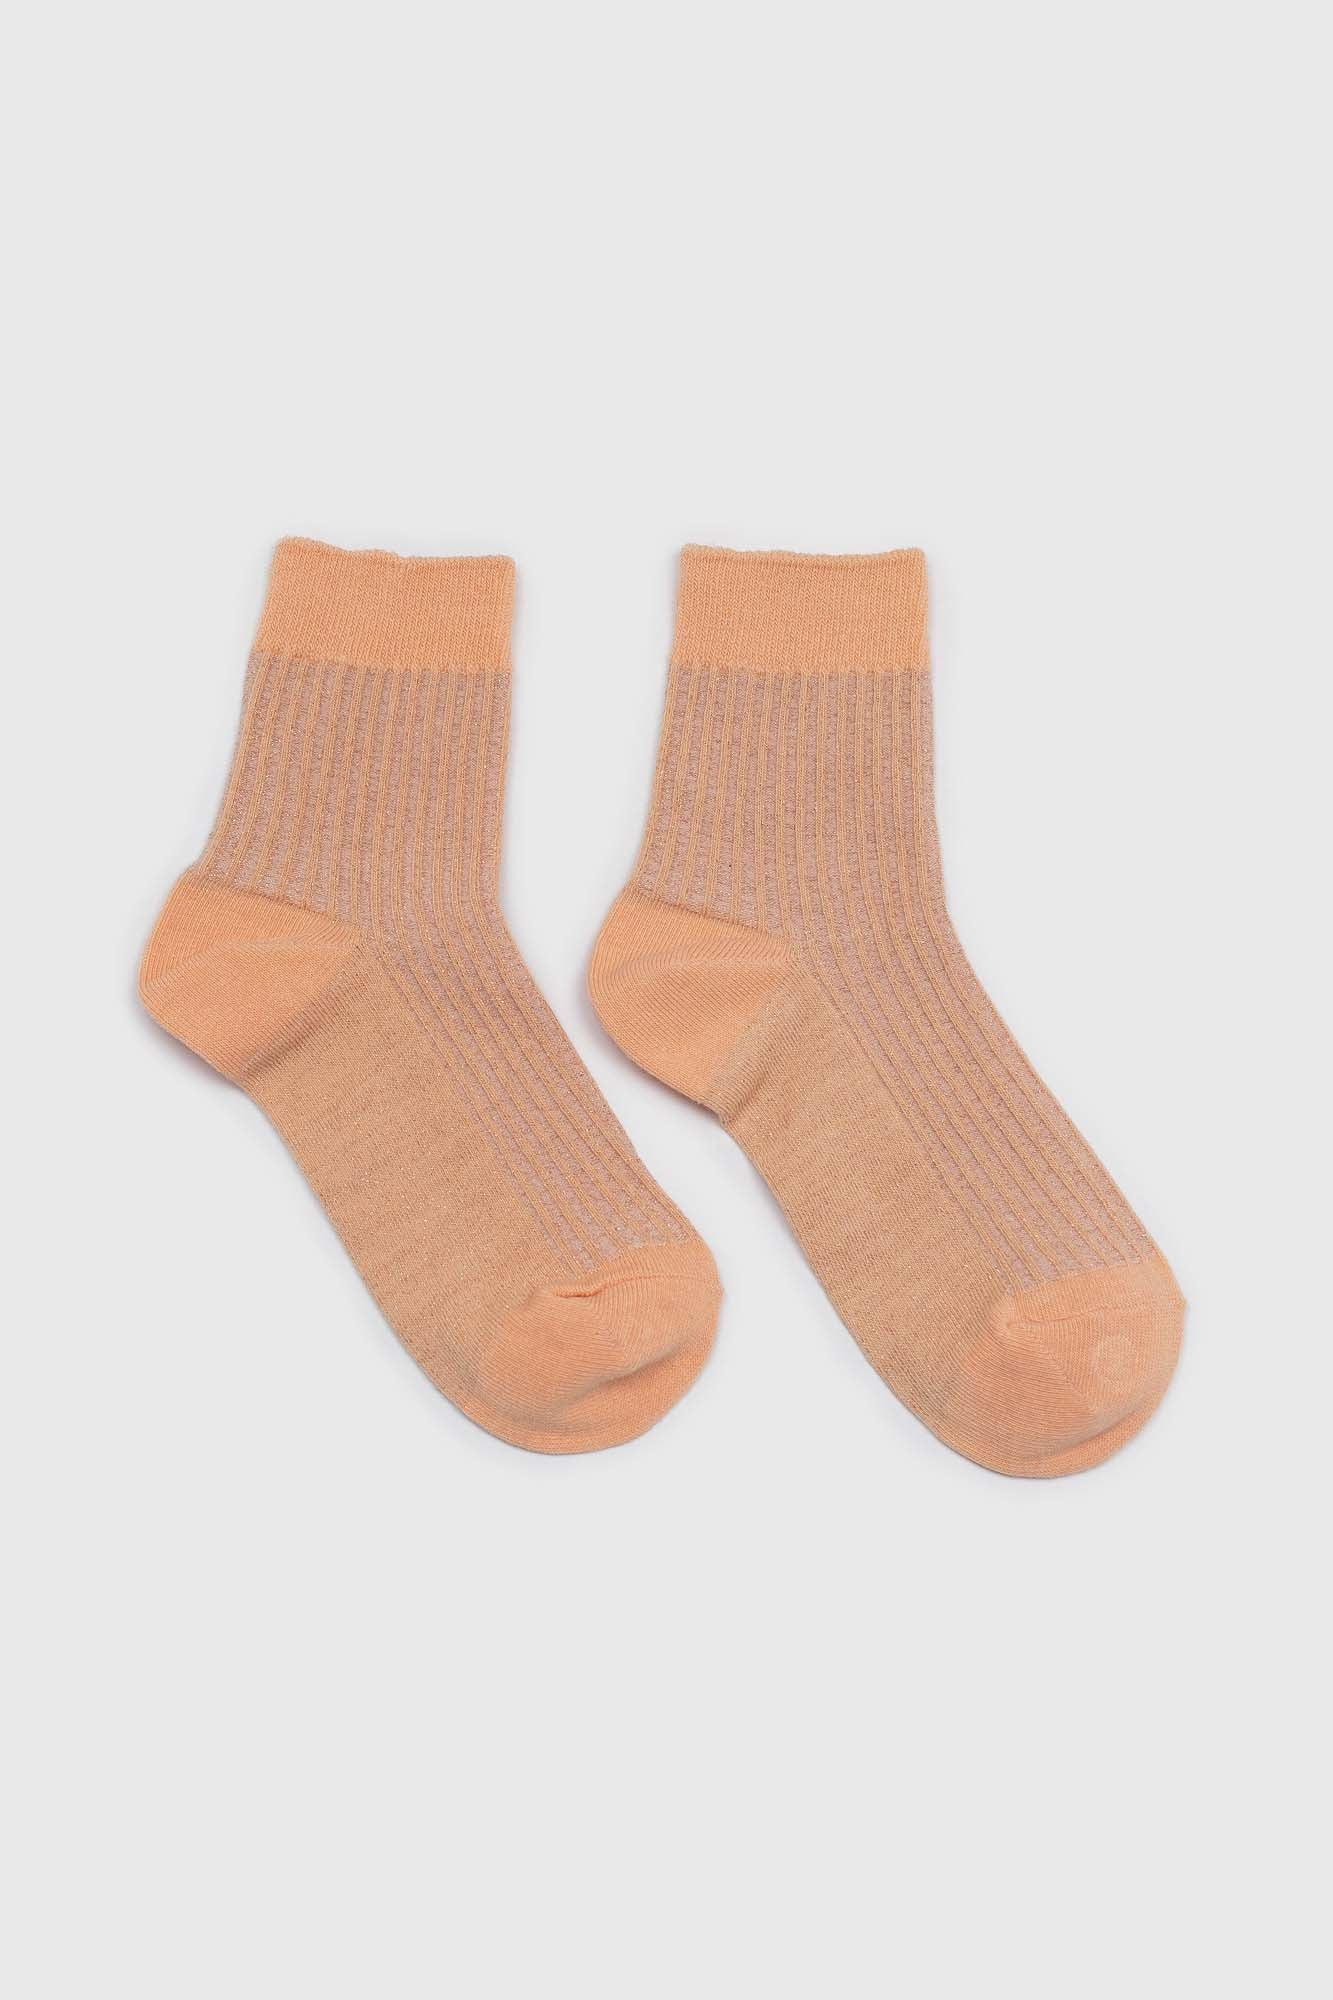 Sherbet orange metallic vertical stripe socks3